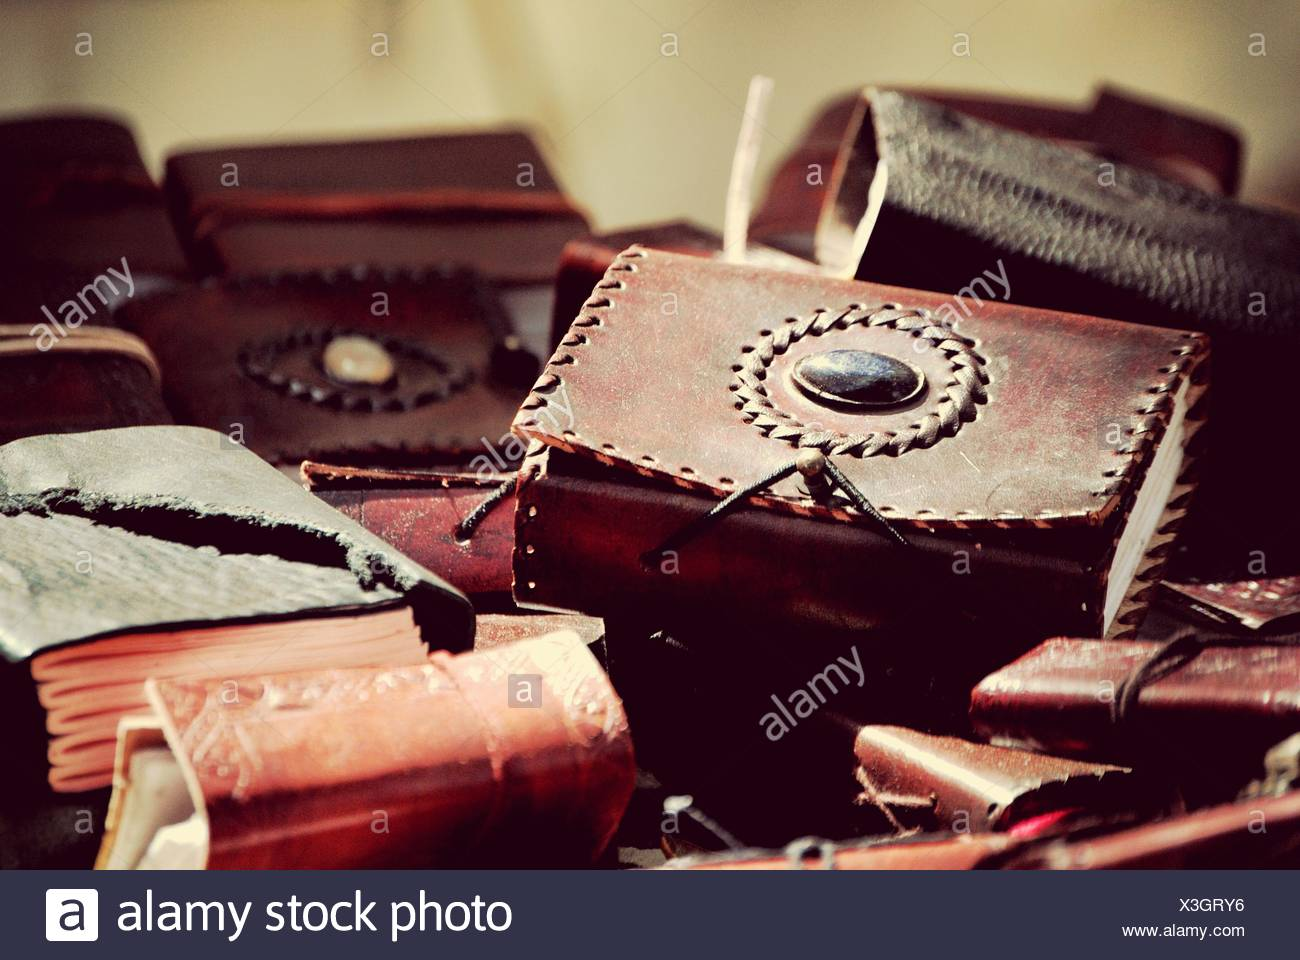 Detail Of Leather Purses - Stock Image